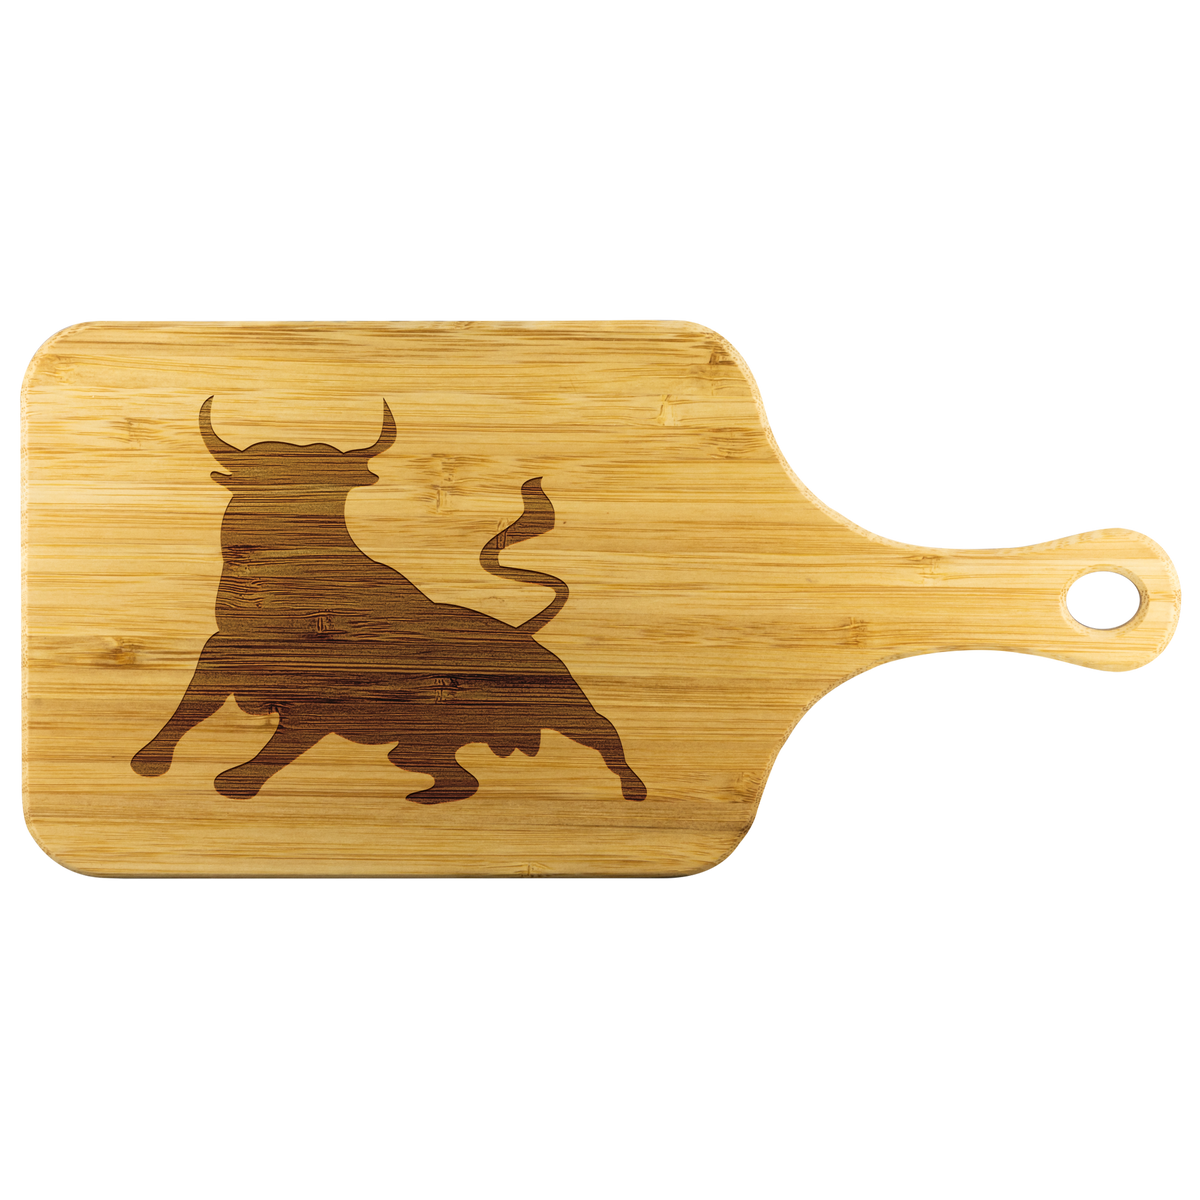 Wall Street bull - Wood cutting board with handle